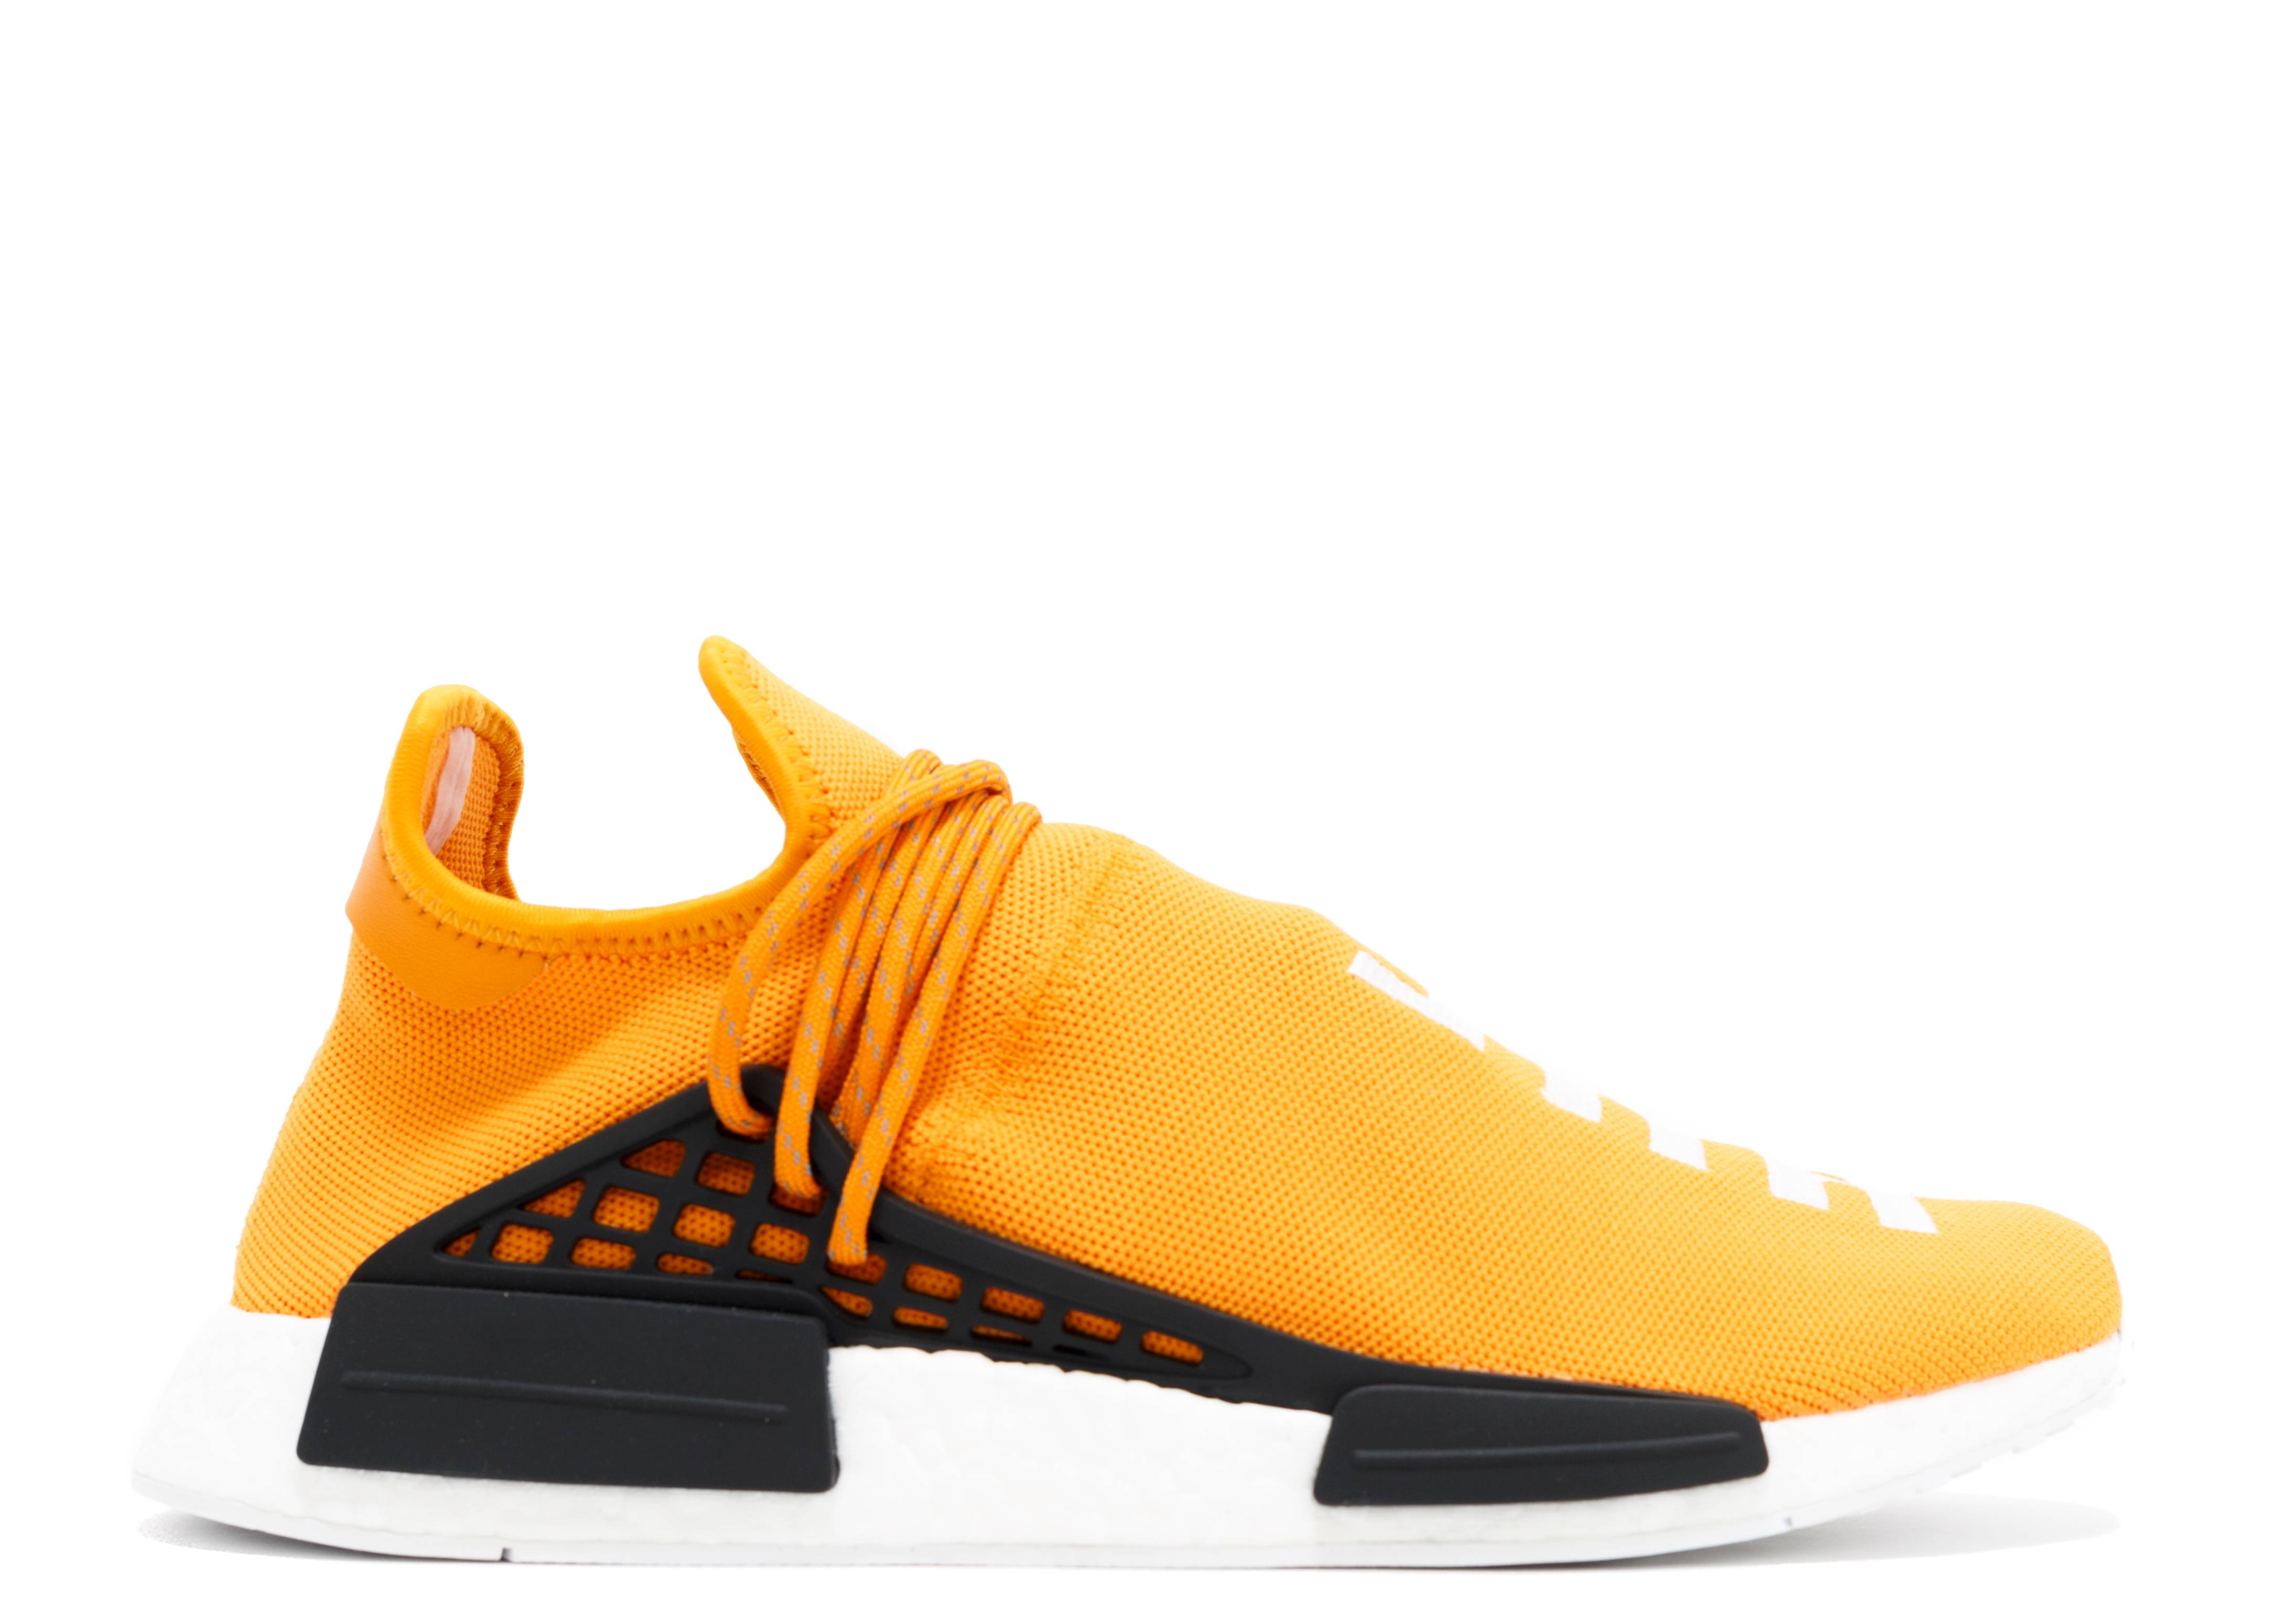 b442962be Pw Human Race Nmd